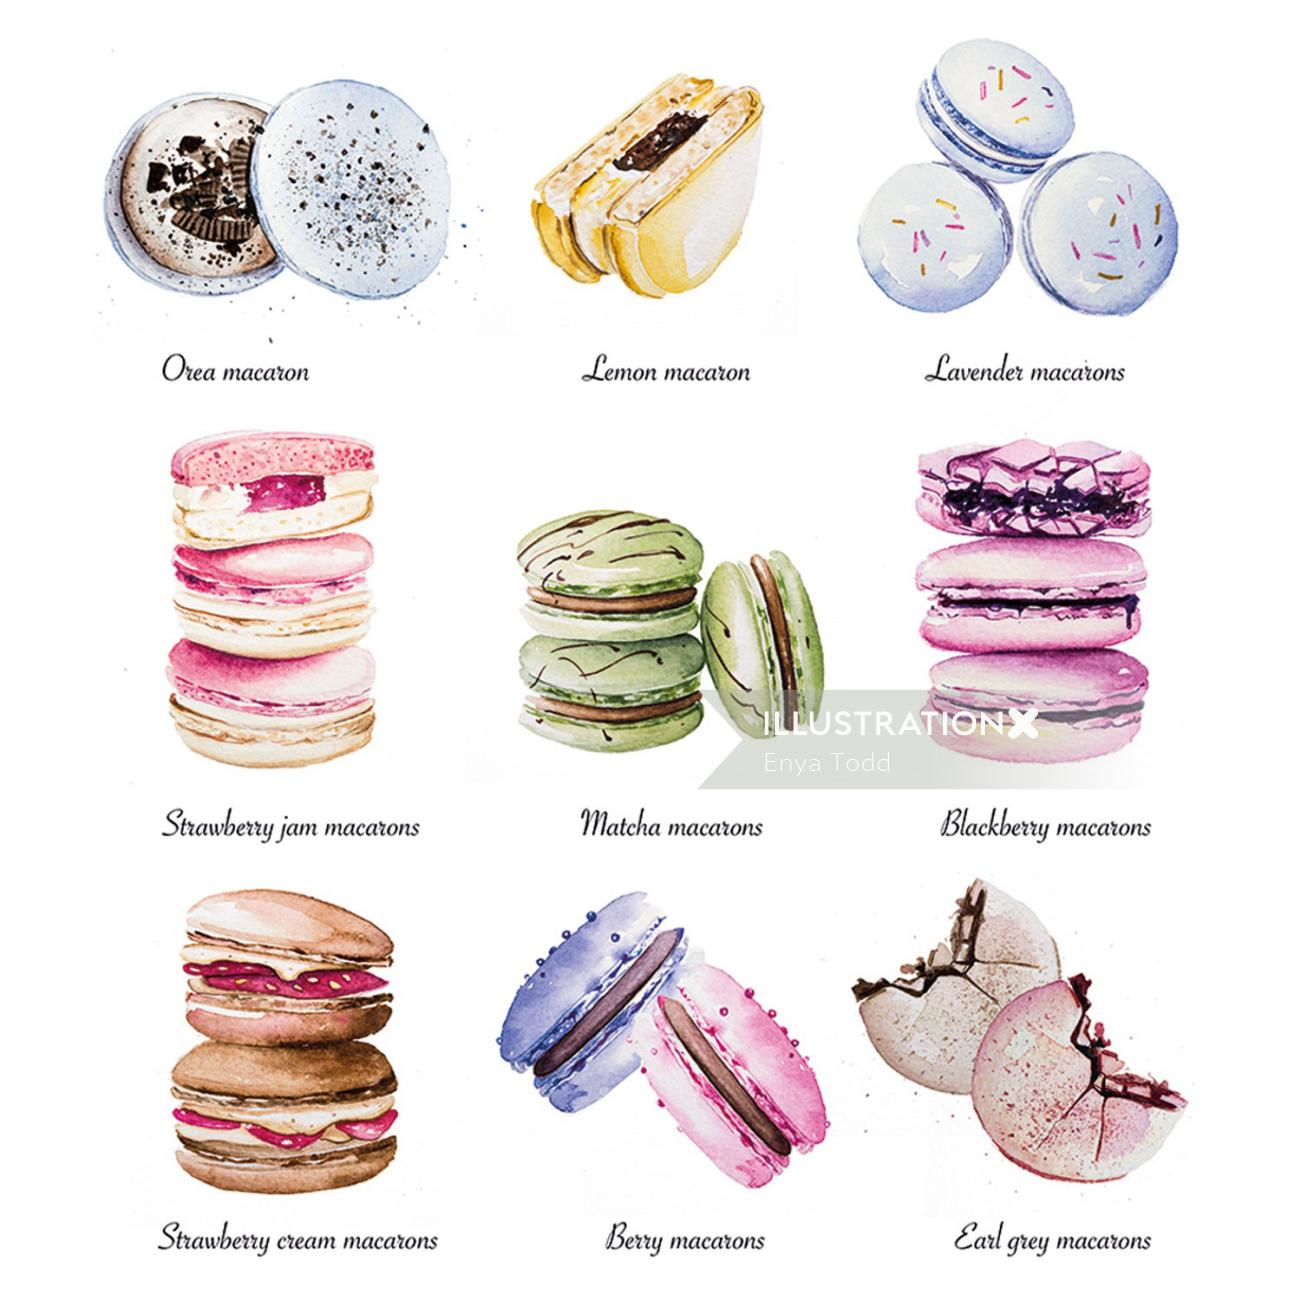 Macarons food illustration